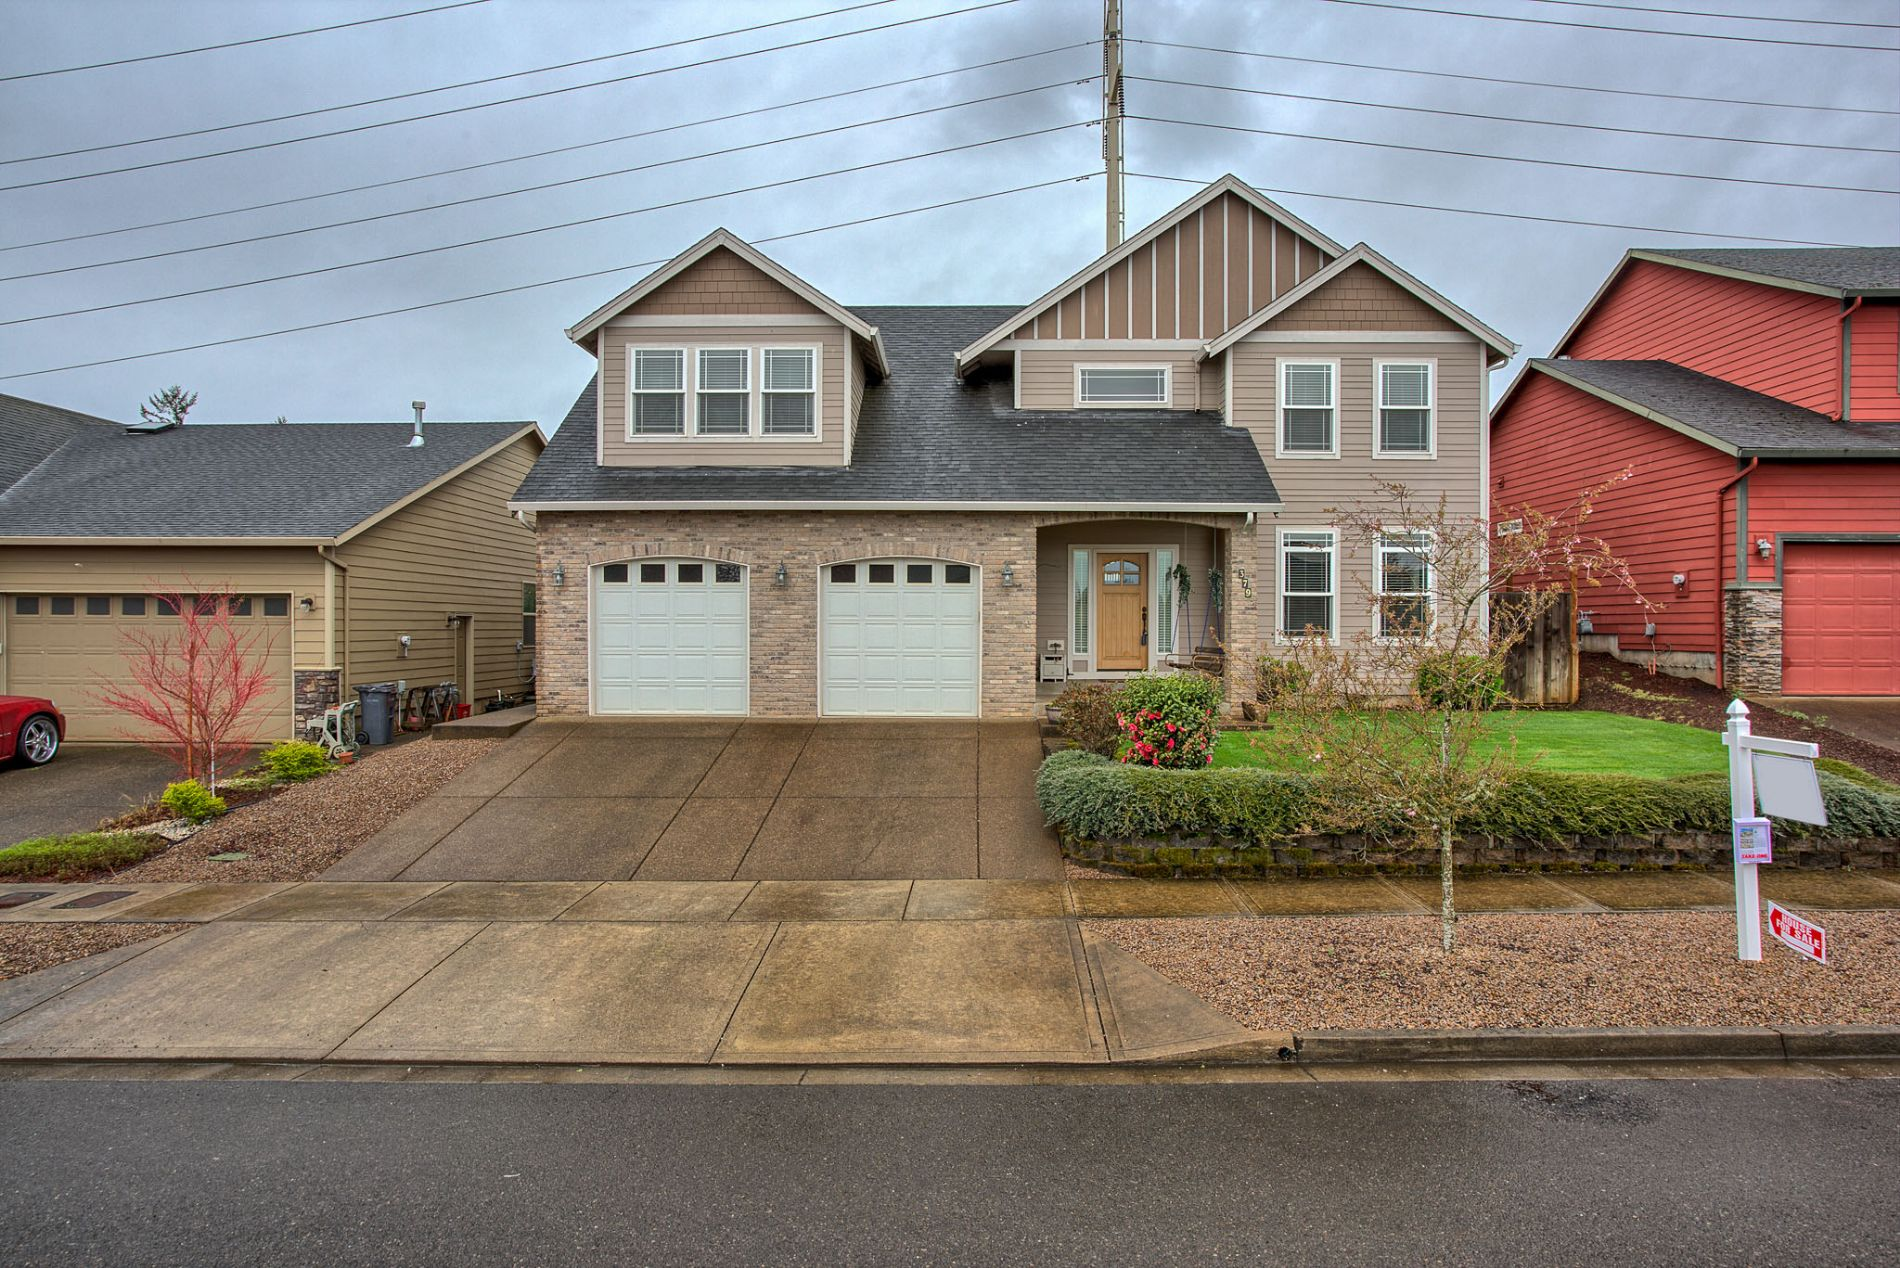 greg messick featured property listings and homes for sale rh byowneroregon com